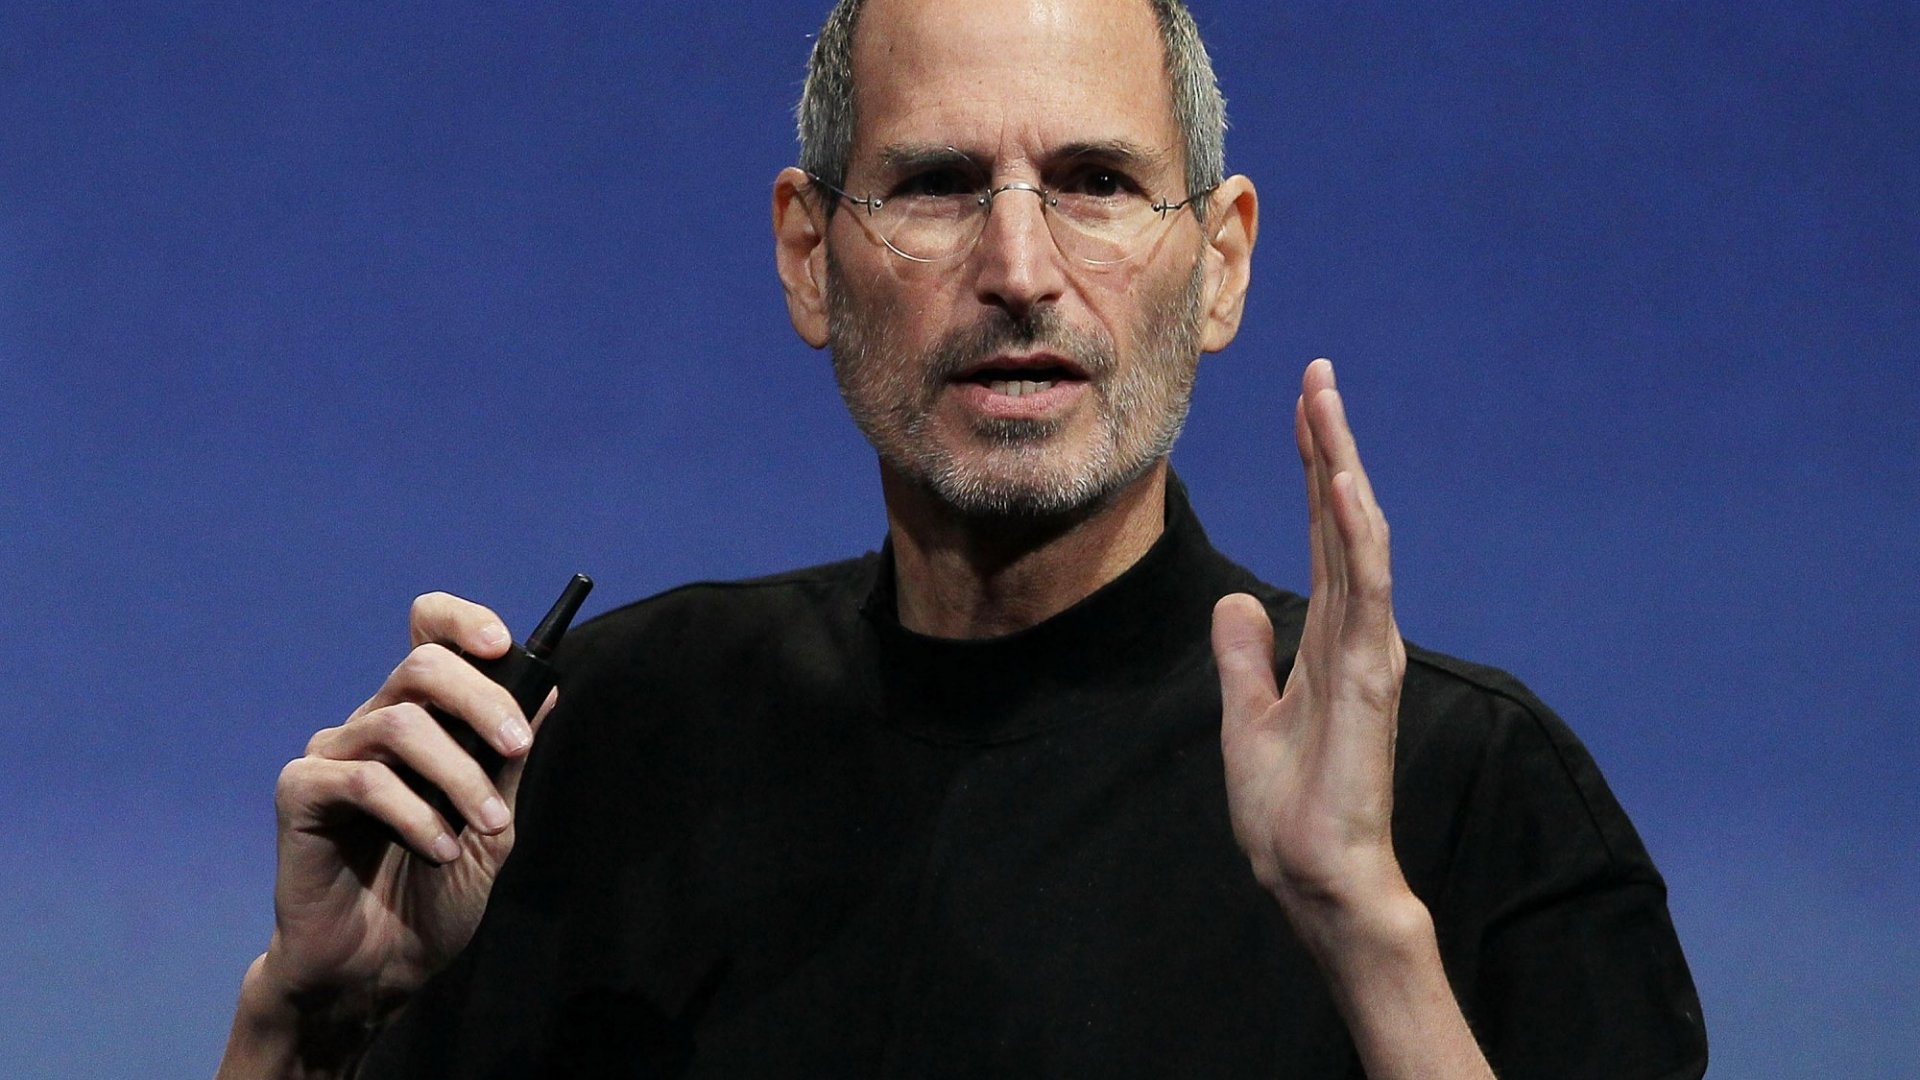 Steve Jobs Taught Former Apple CEO John Scully How to Use This Process to Simplify Ideas